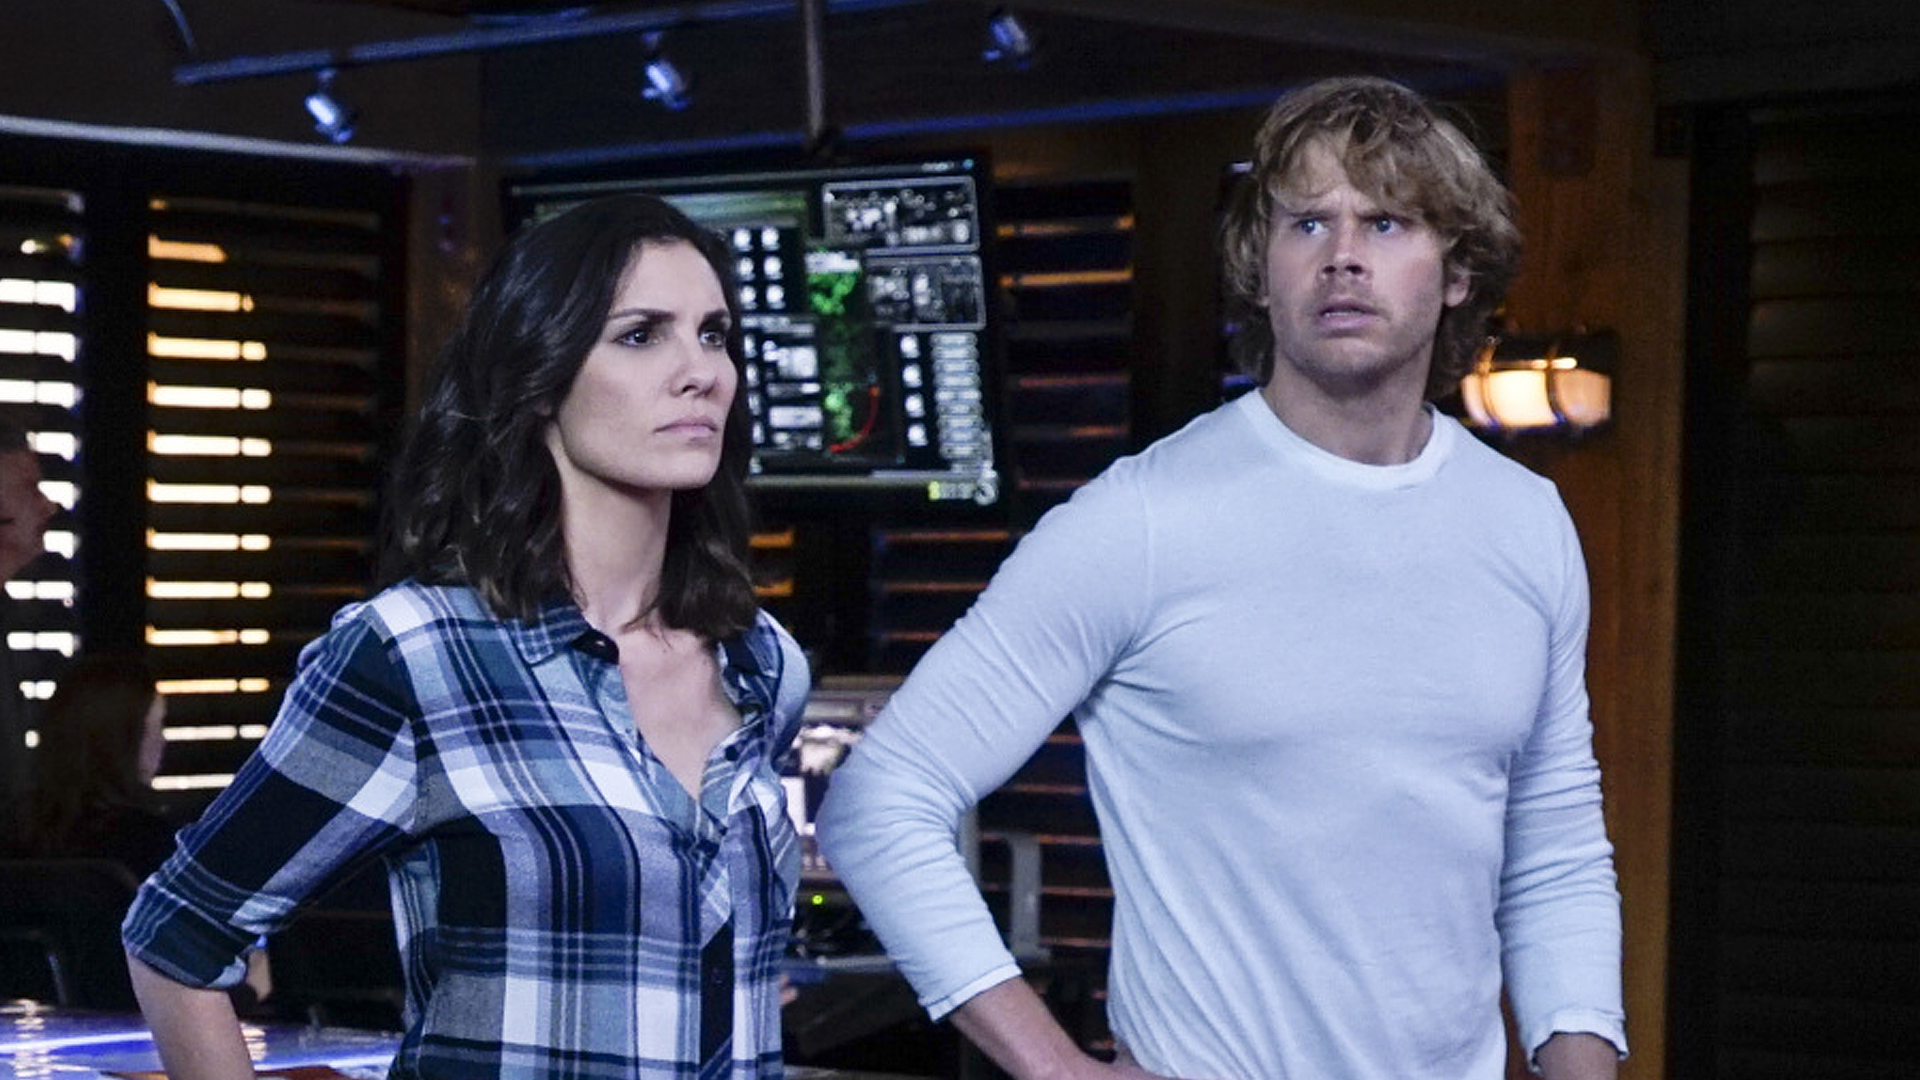 When Deeks and Kensi felt out